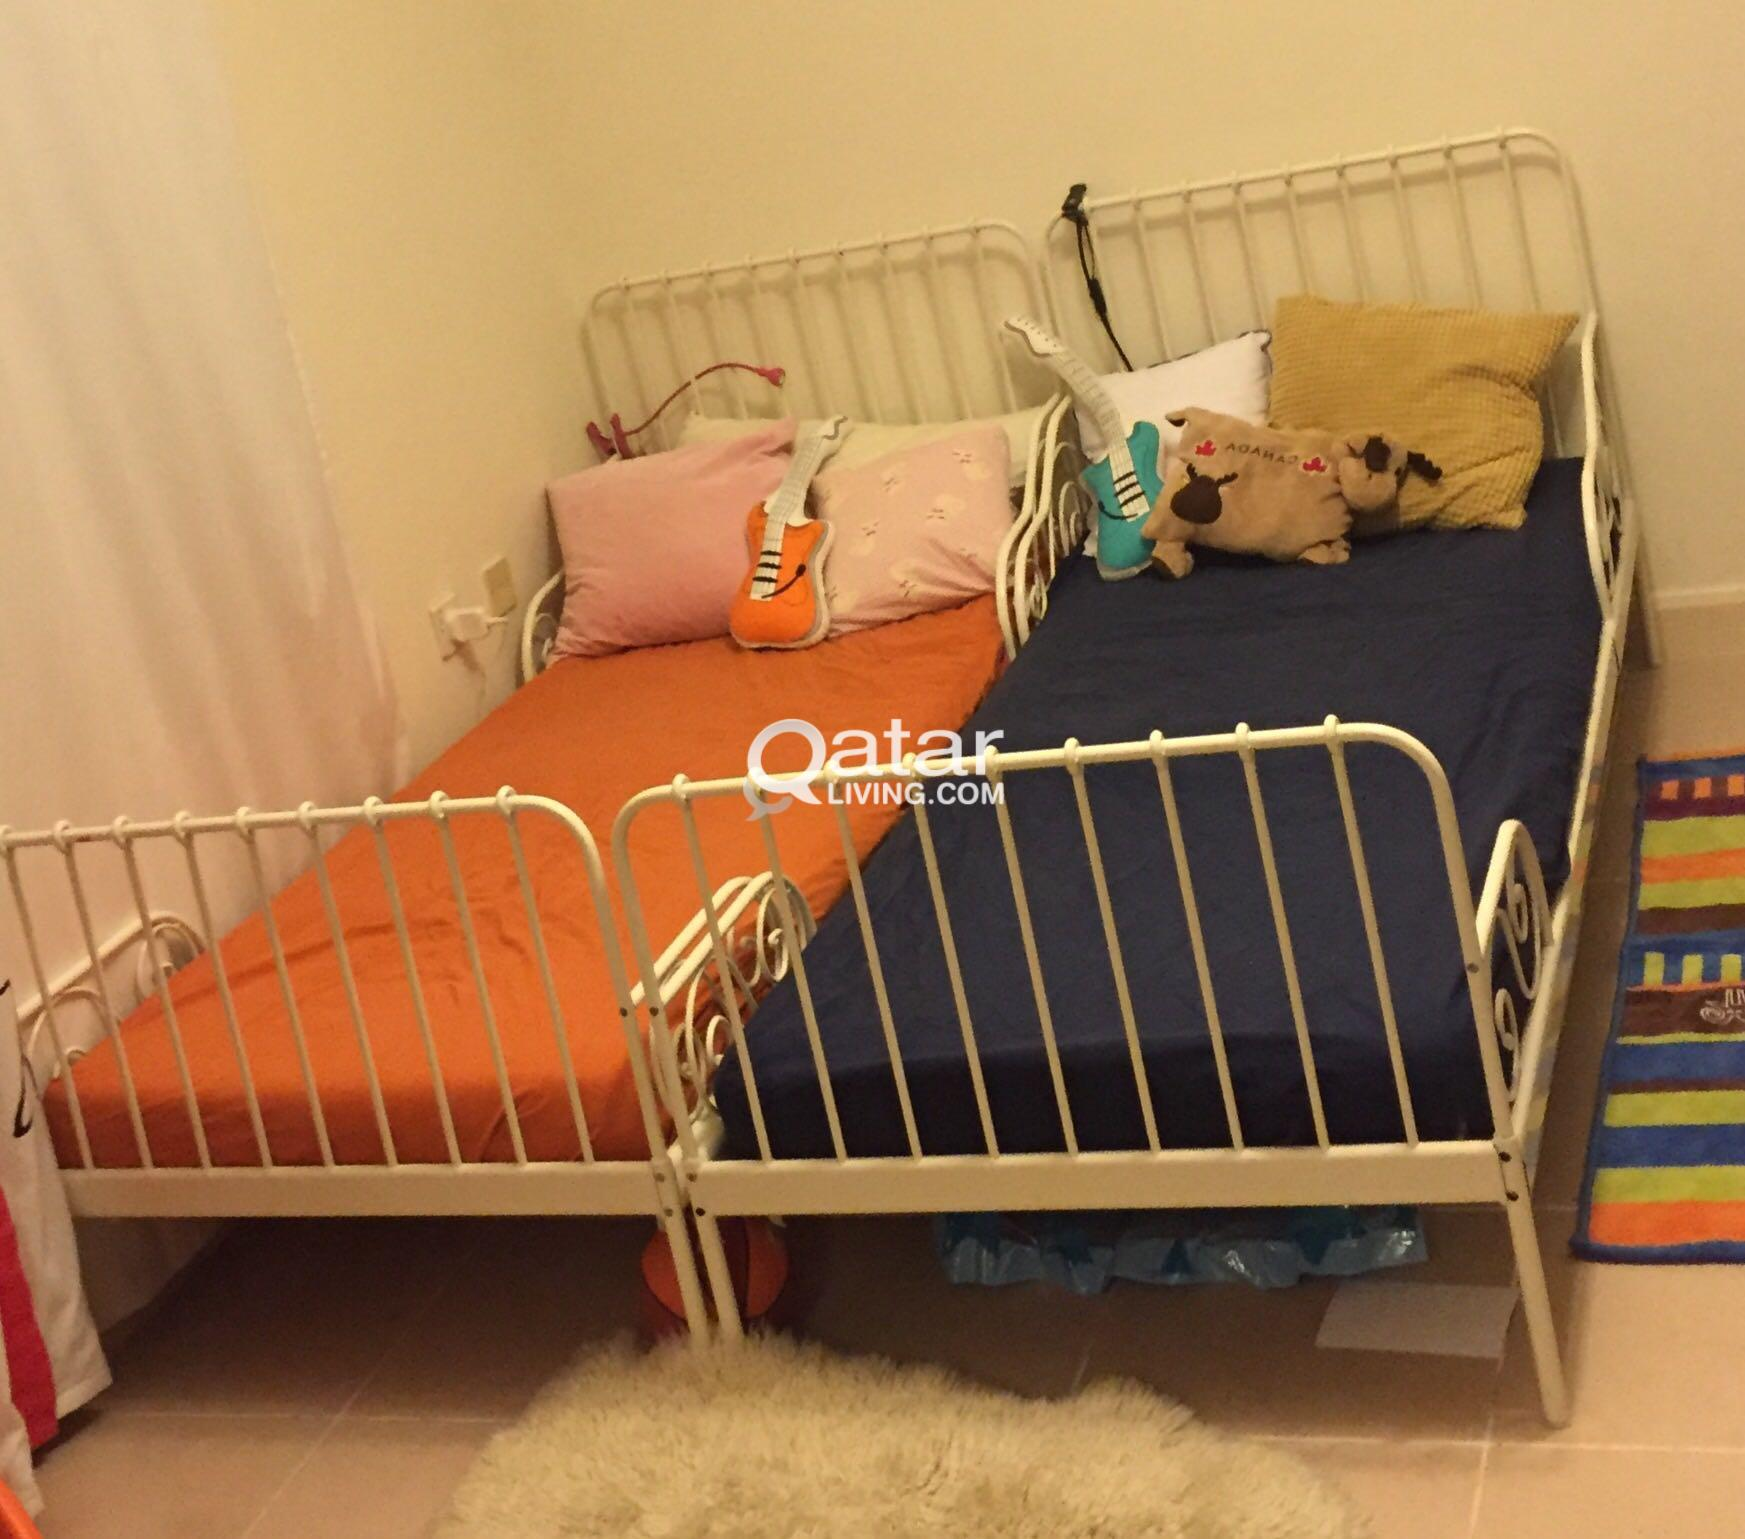 ikea child bed 2pcs extendable for kids qatar living